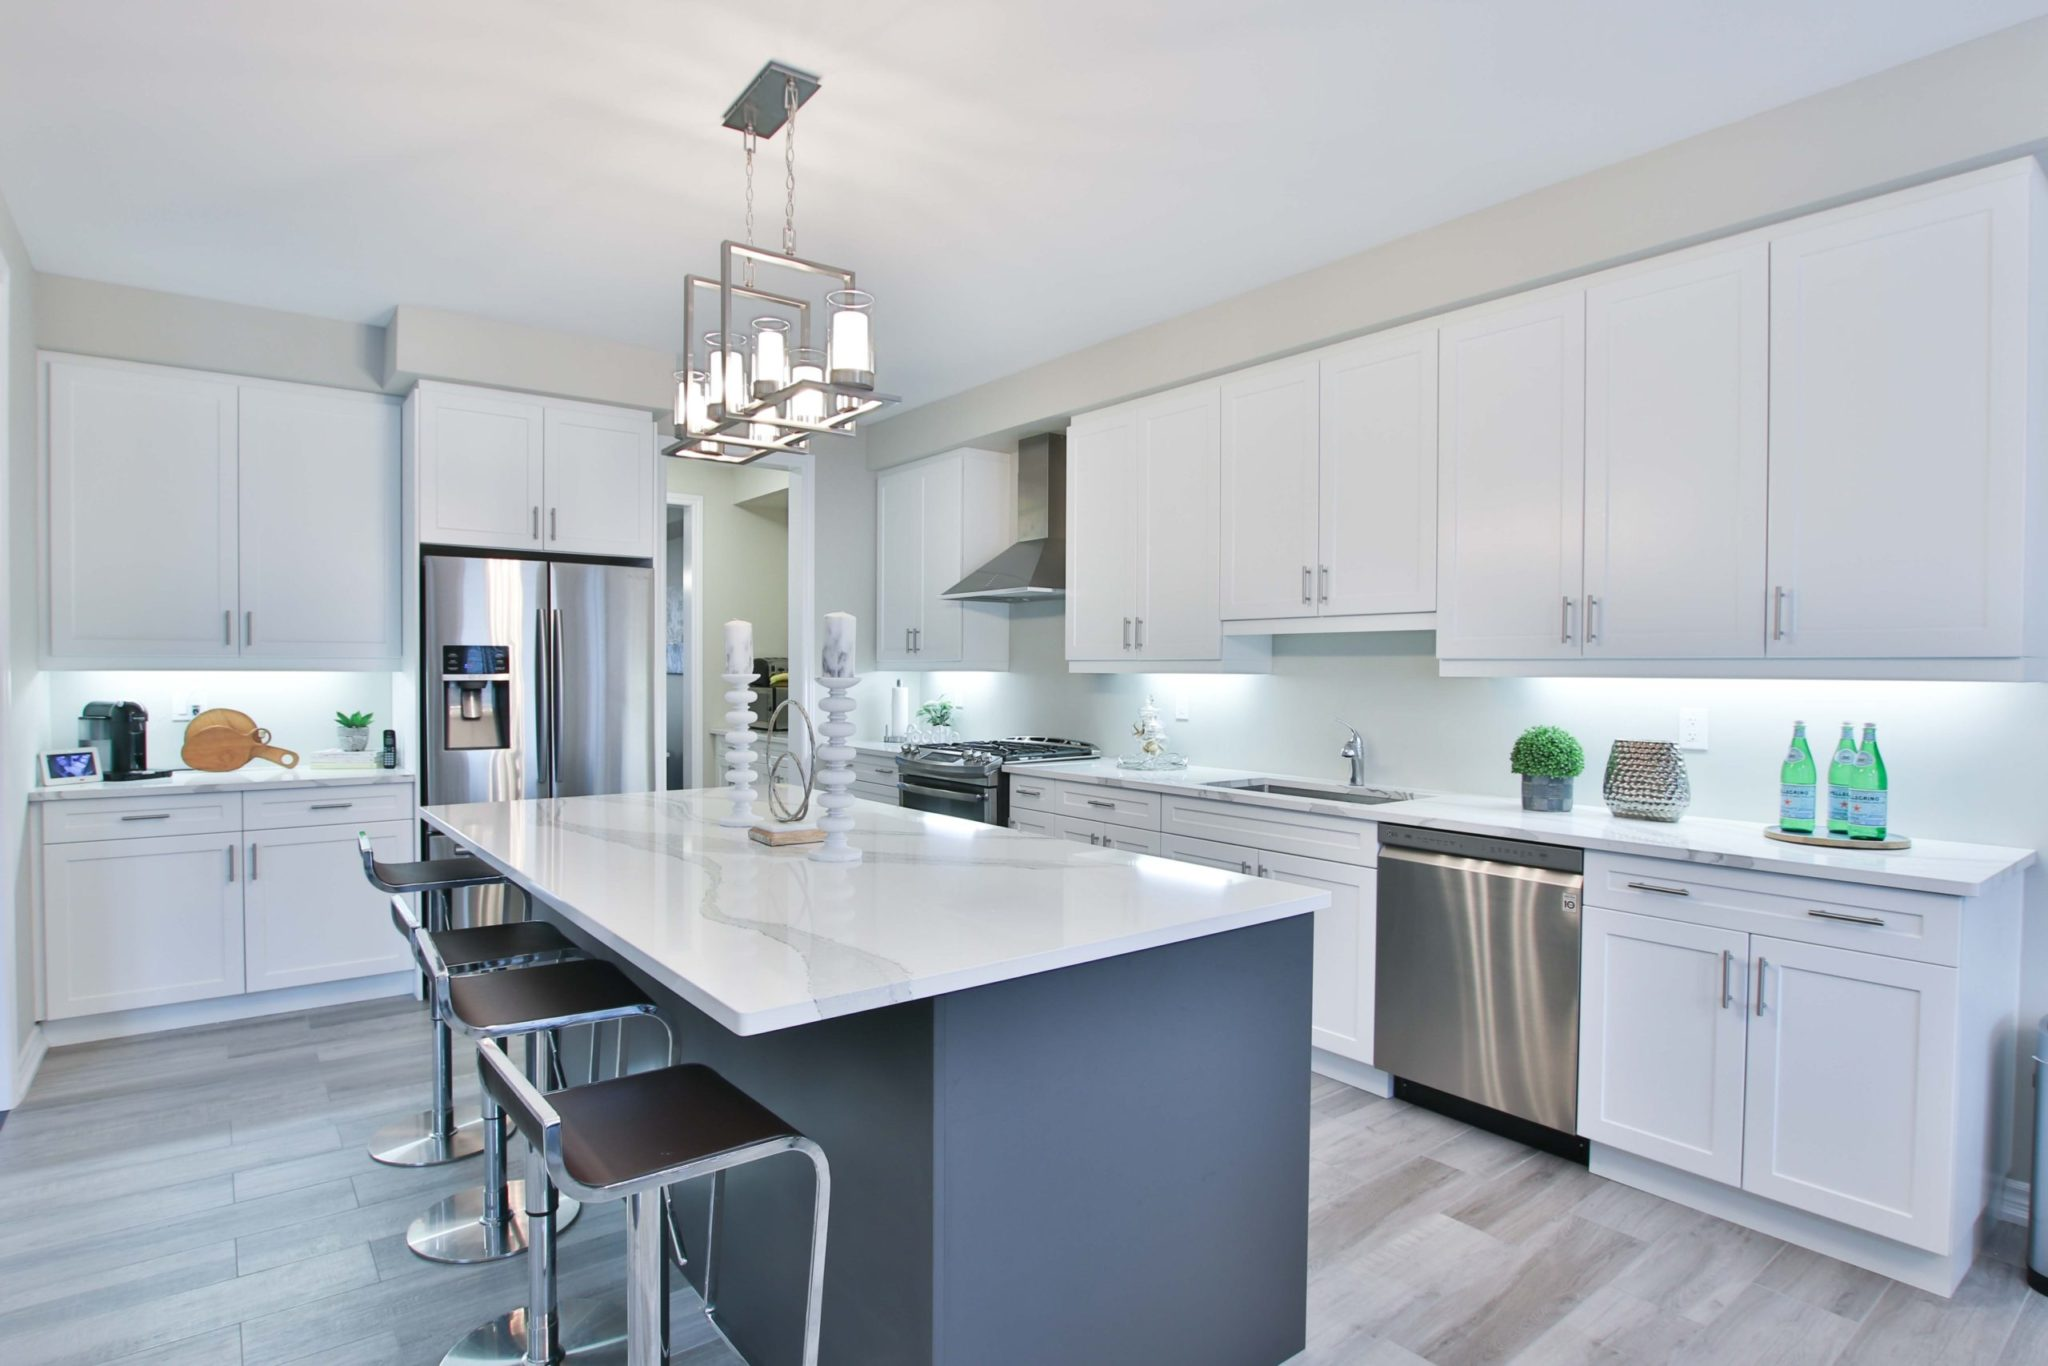 kitchen-renovation-landscape-5-1-scaled